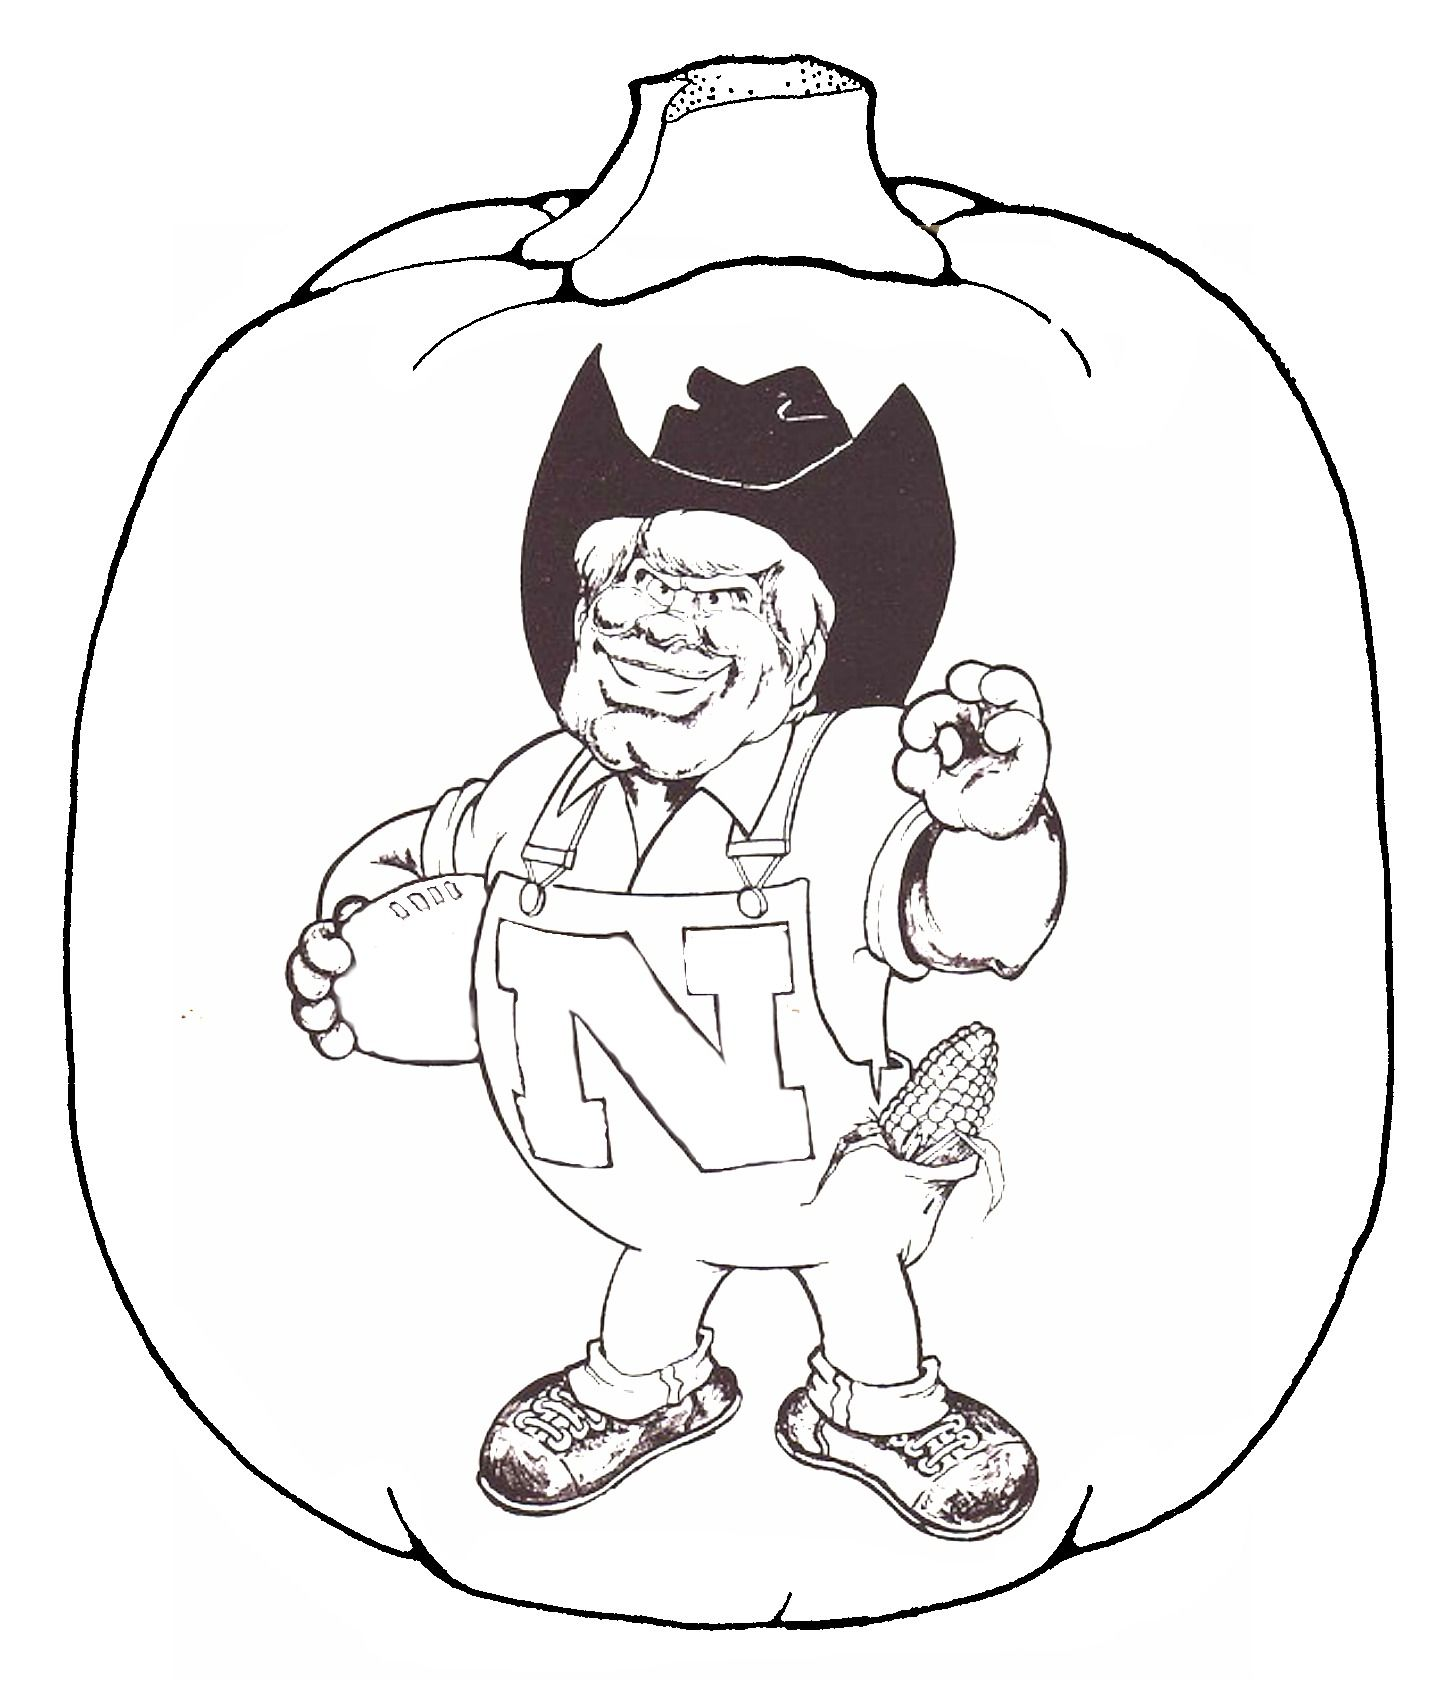 Herbie Husker Coloring Page For